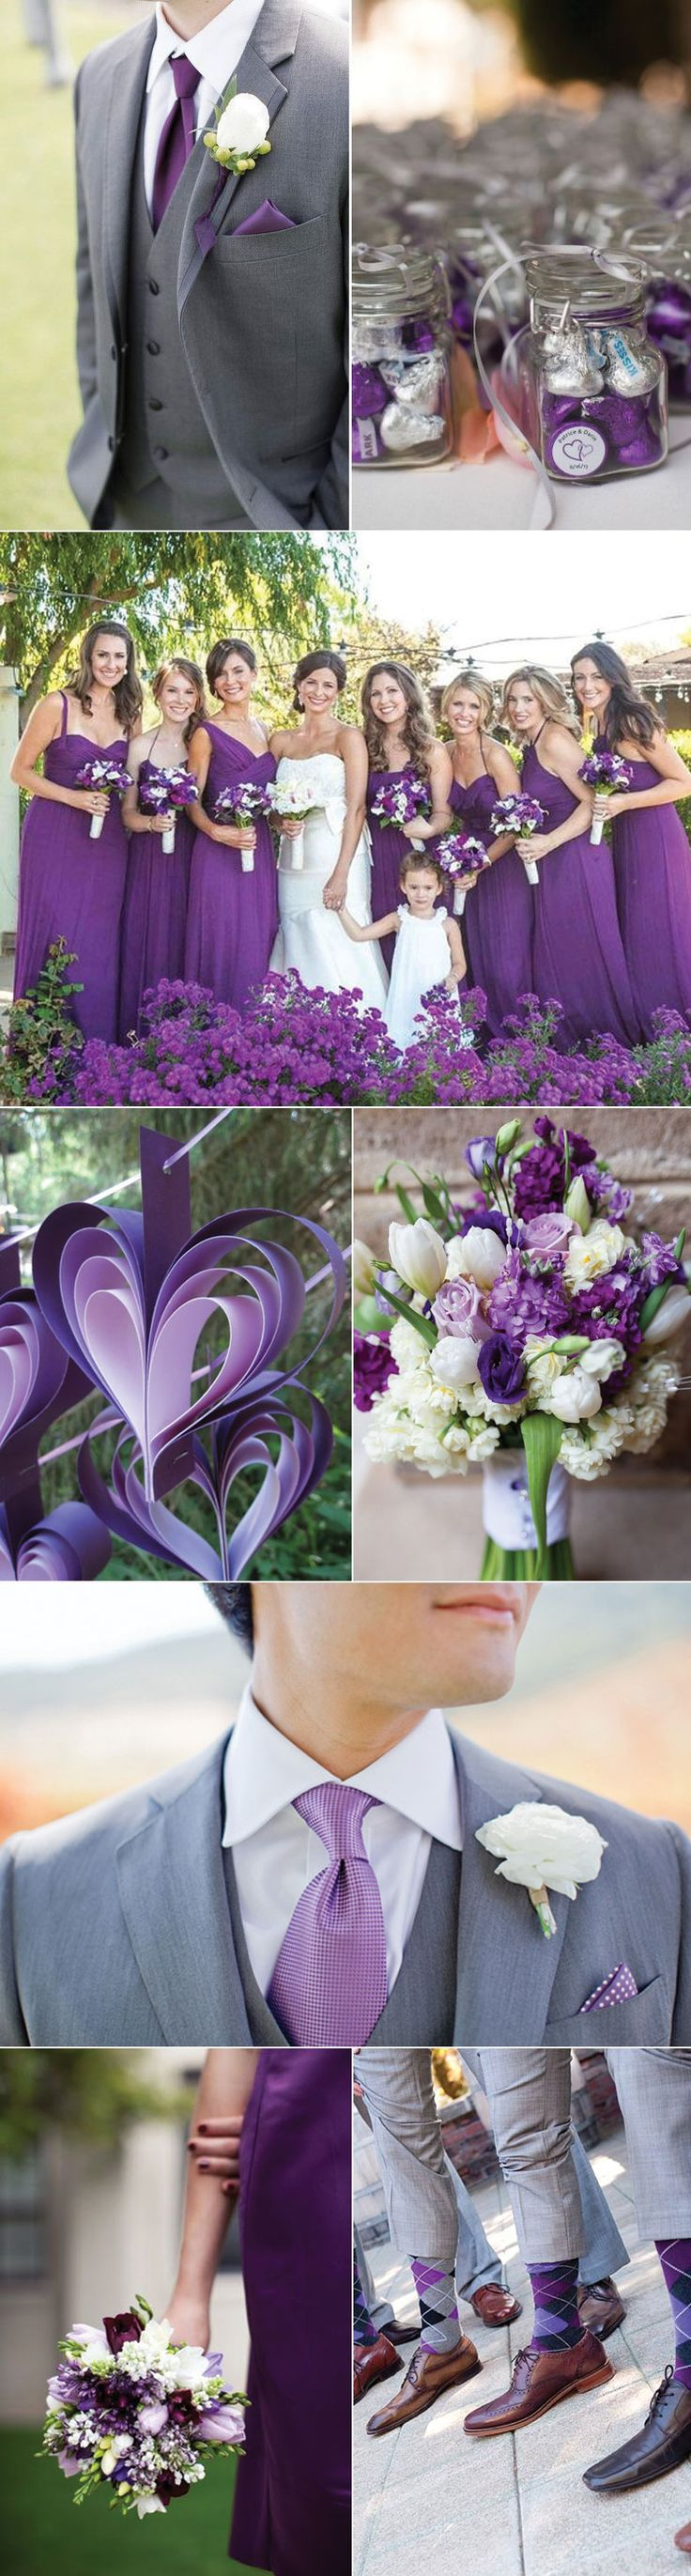 Best 25 Plum Bridesmaid Ideas On Pinterest